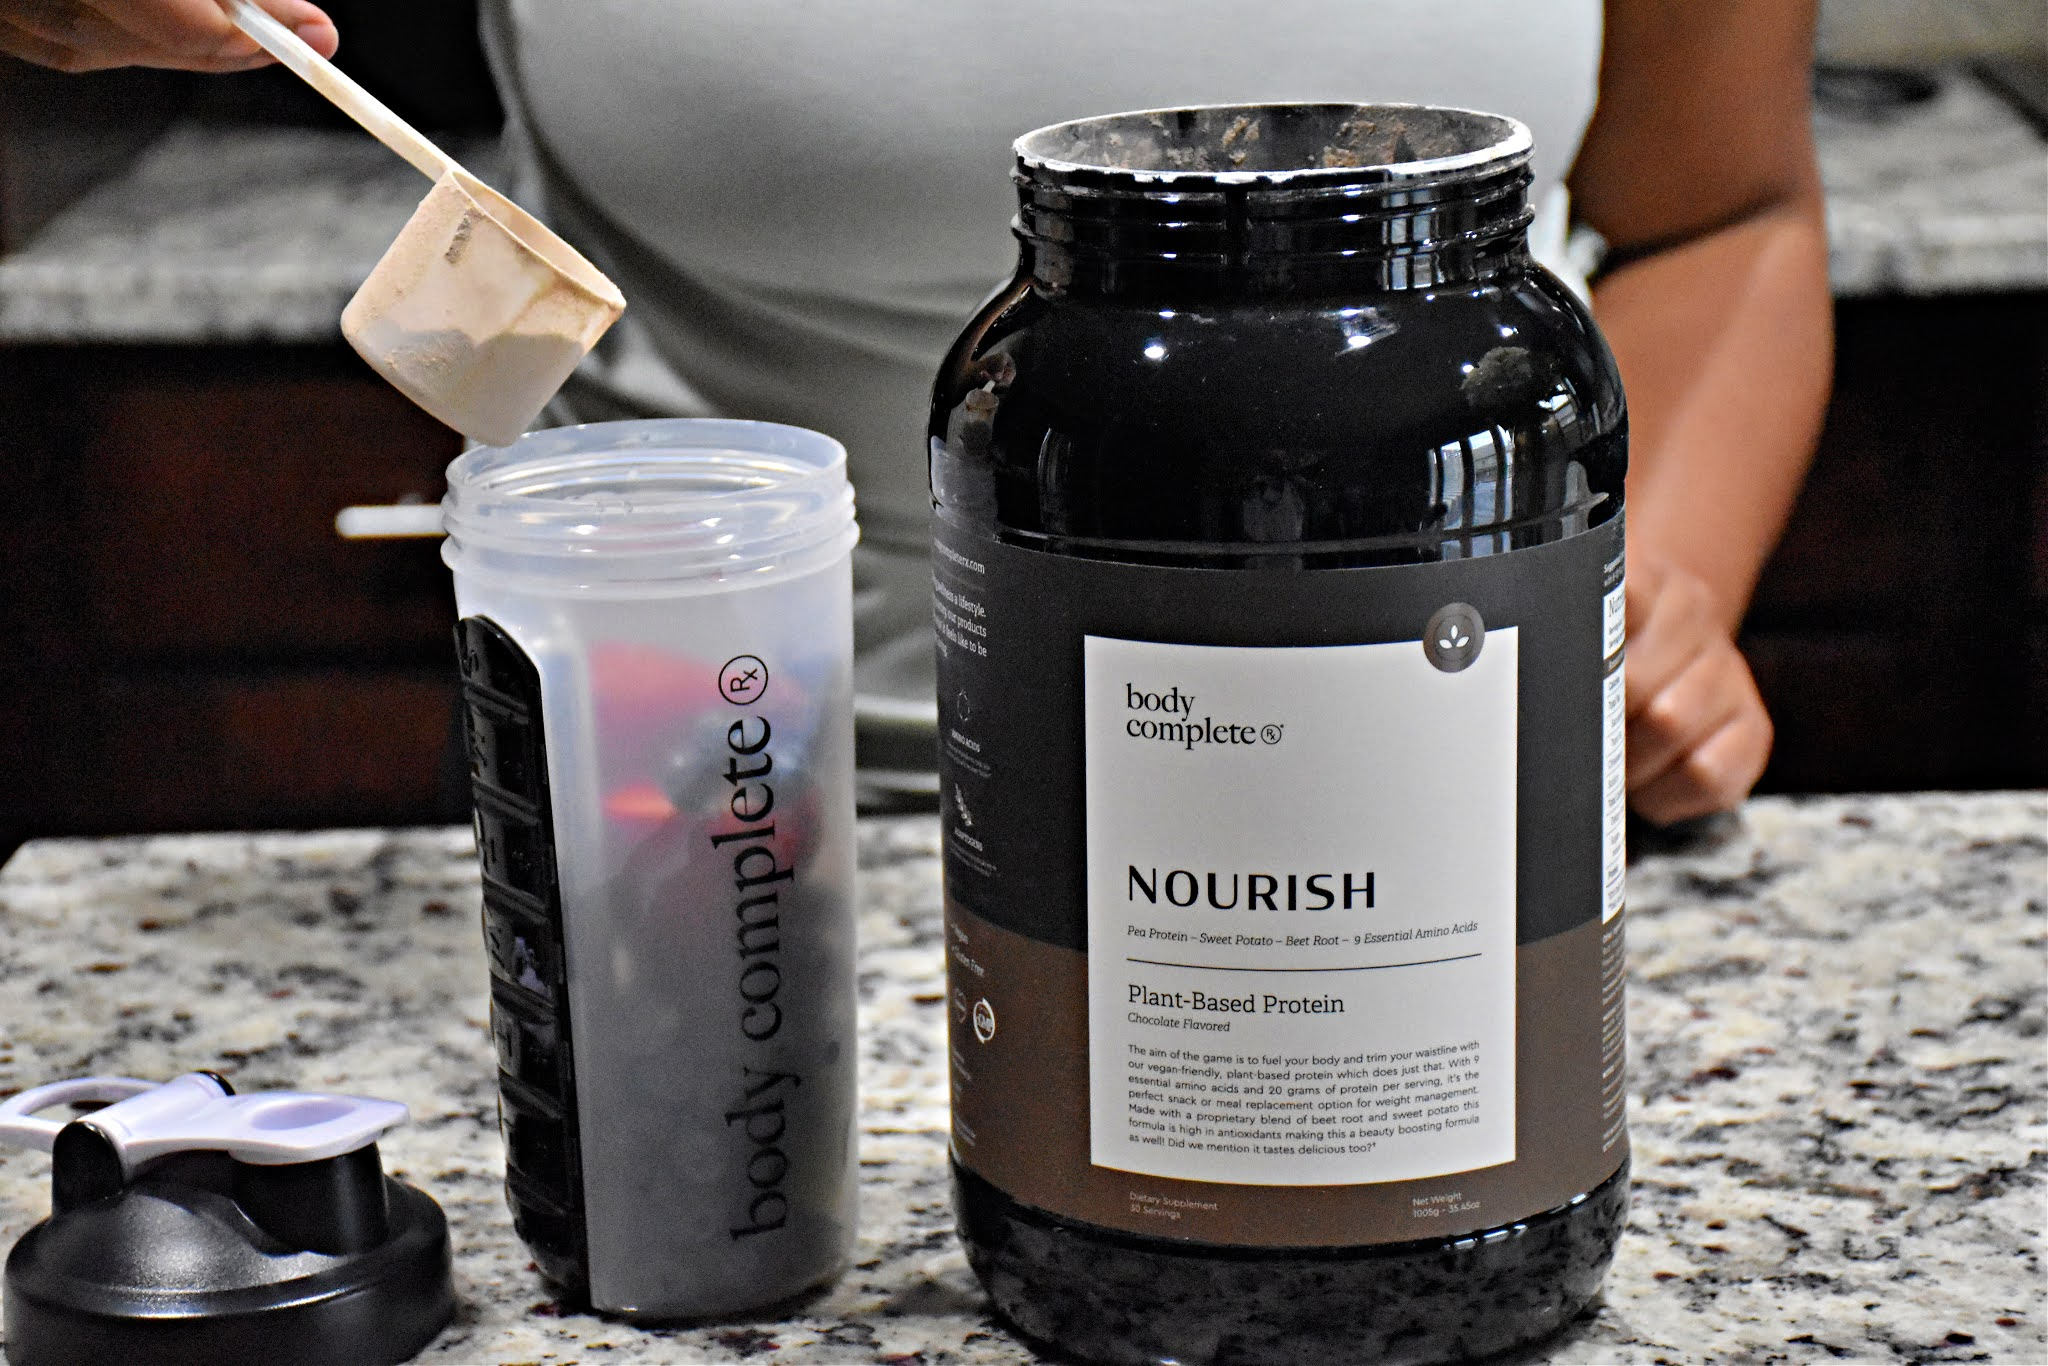 Trim Your Waistline Naturally by using Body Complete RX Nourish Plant-Based Protein